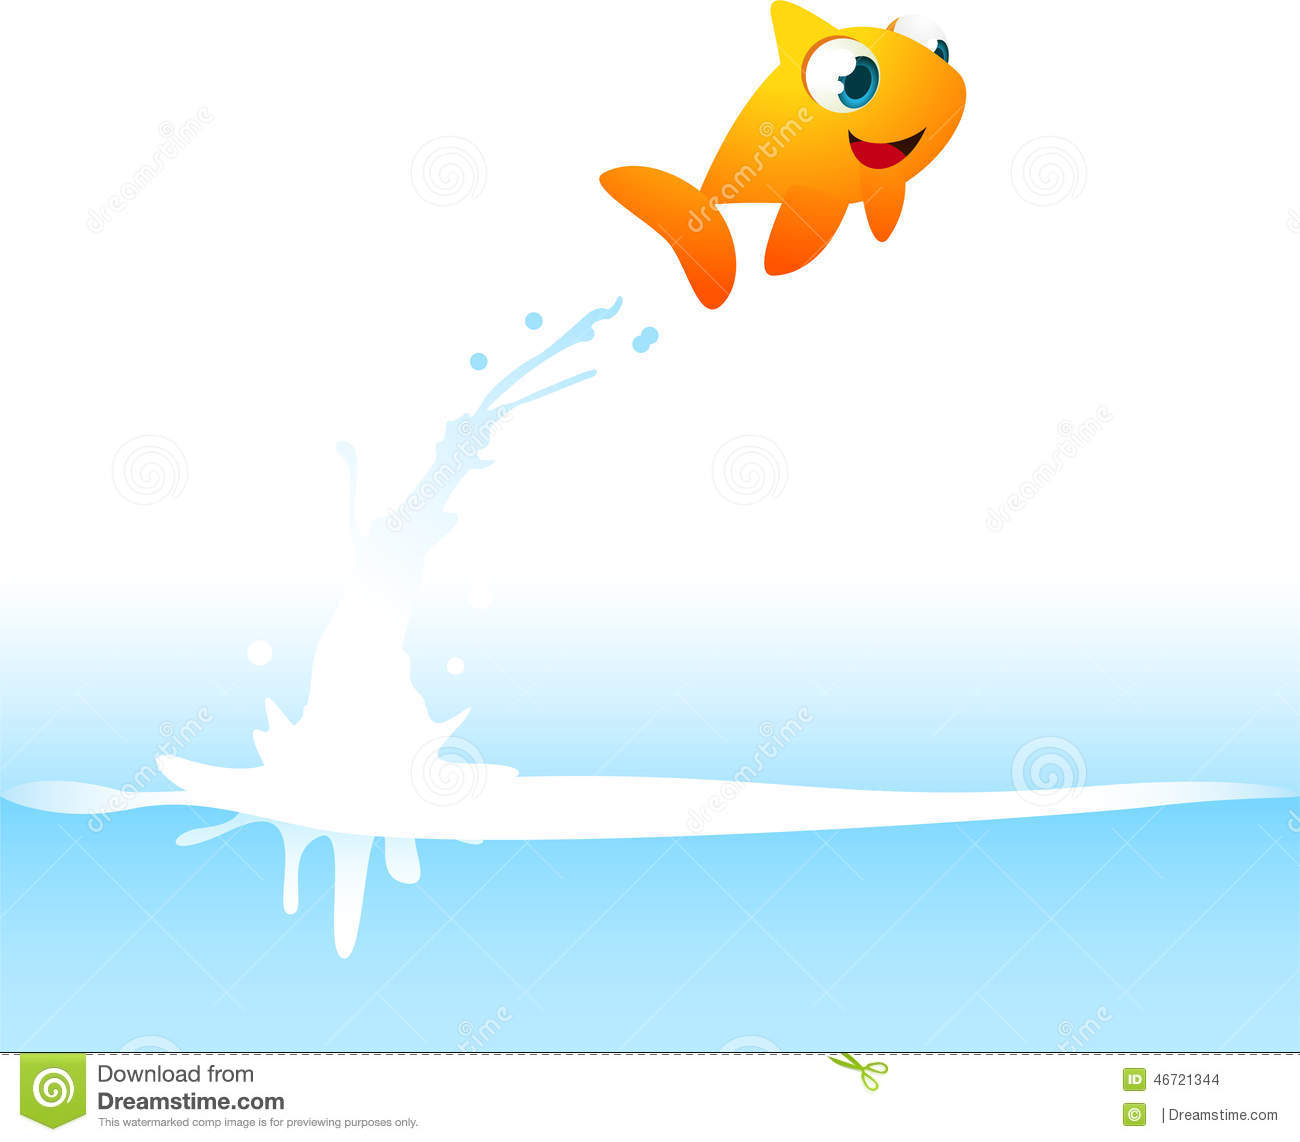 Cartoon fish jumping out of water clipart - photo#4